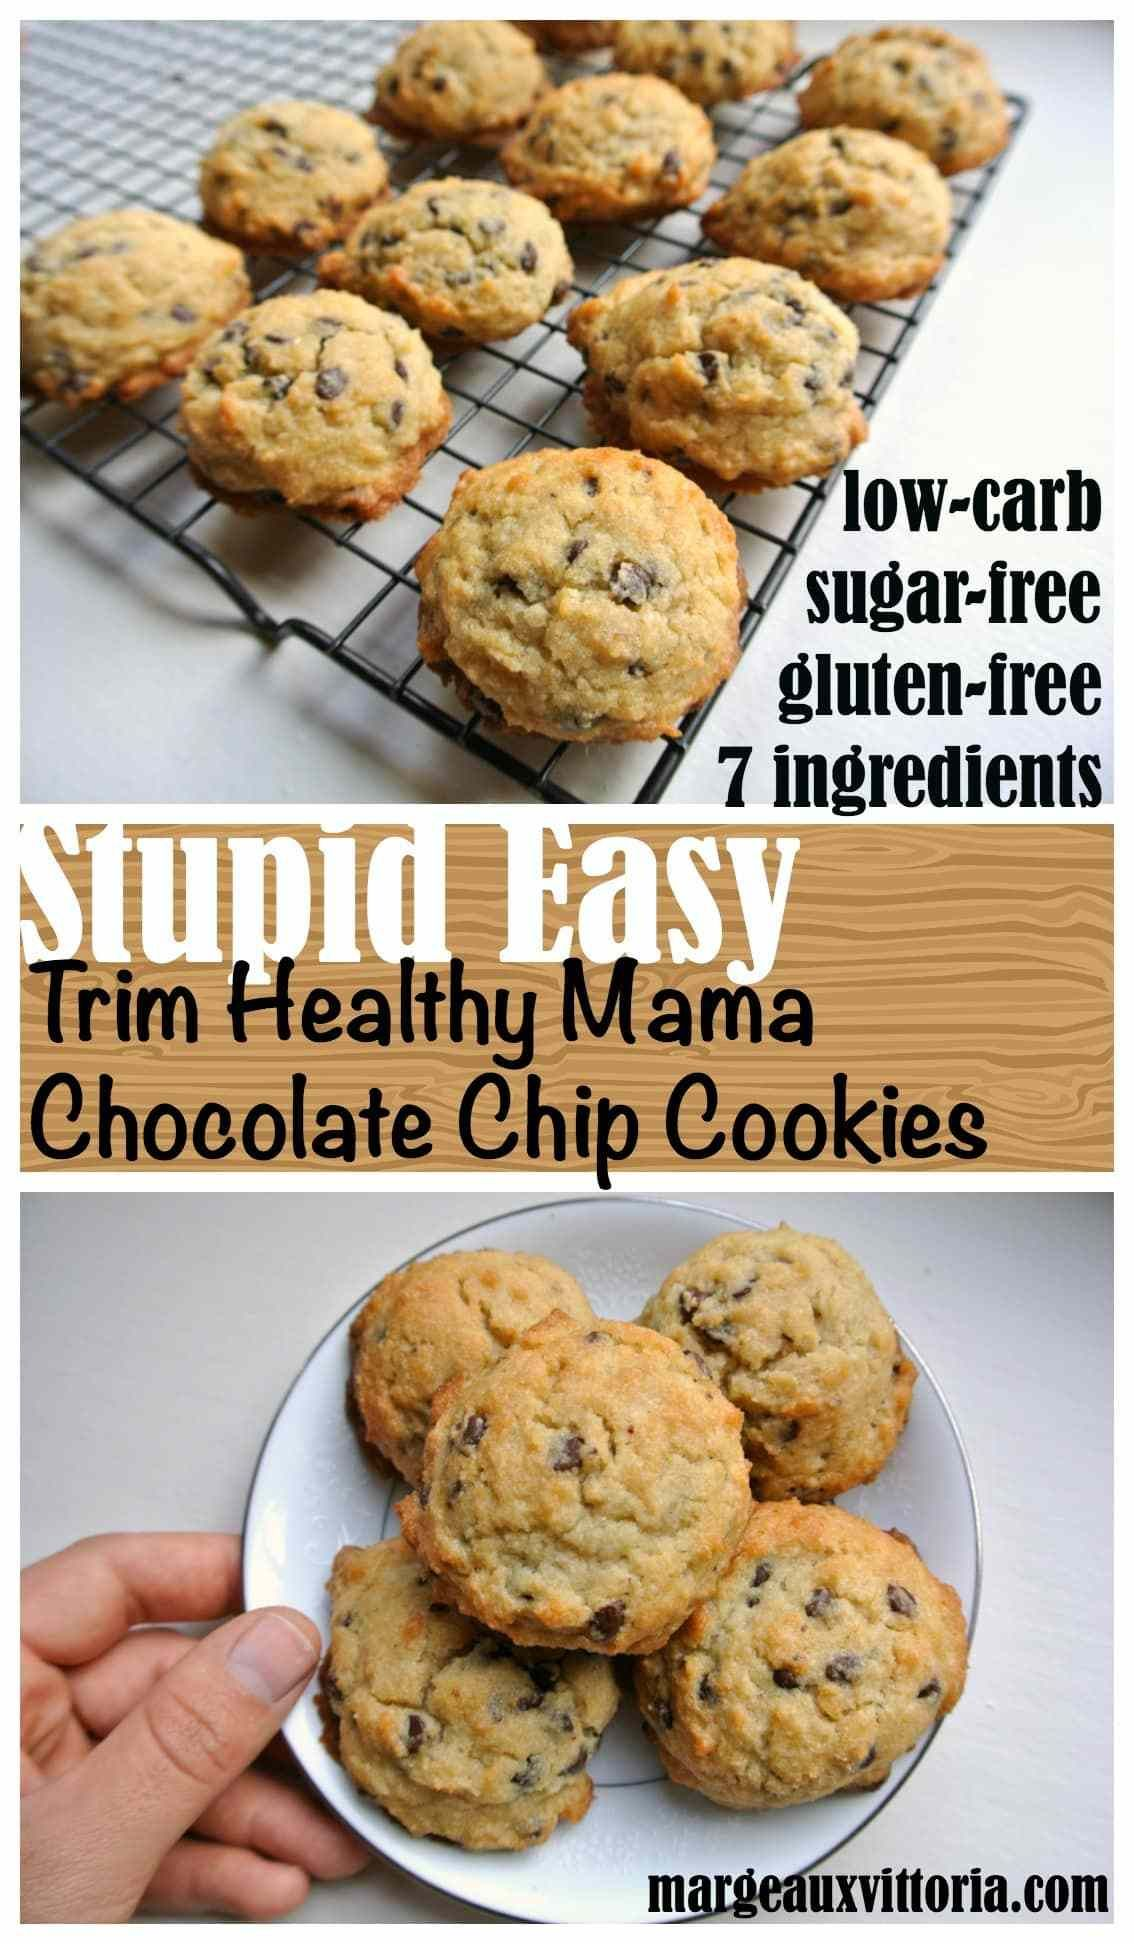 Stupid Easy Trim Healthy Mama Chocolate Chip Cookies | Recipe ...